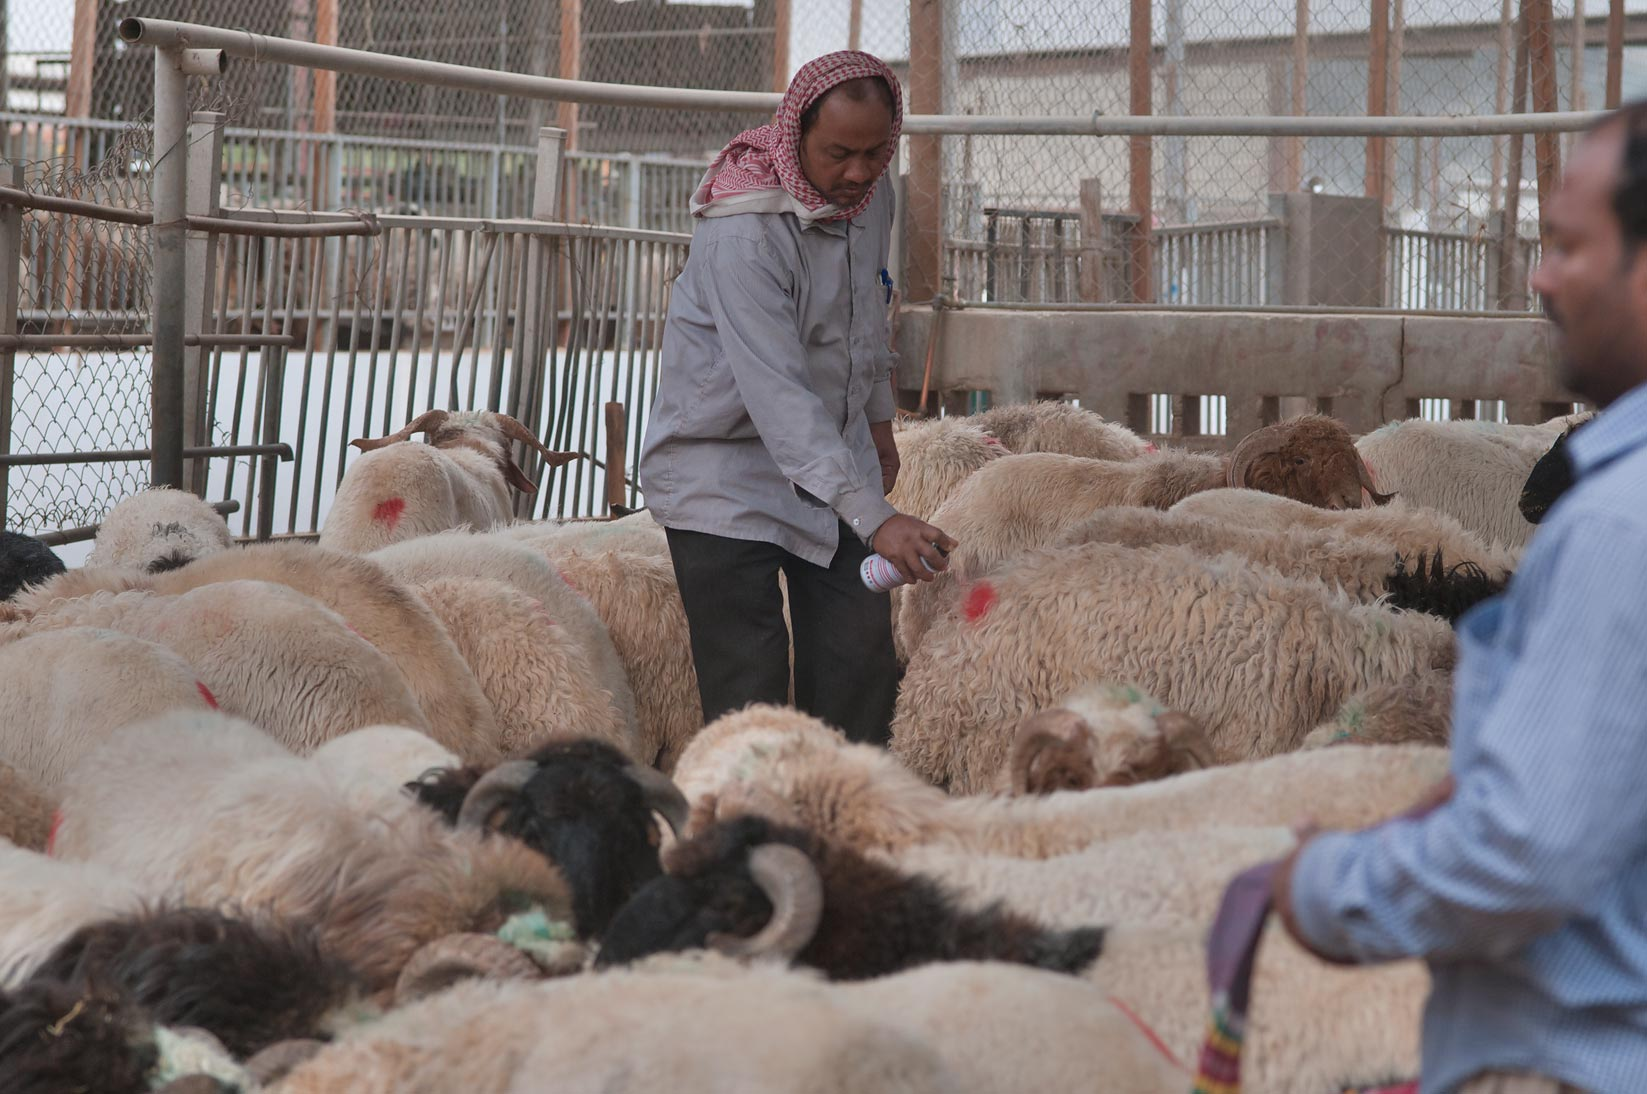 Marking sheep by spray for identification in...Wholesale Markets area. Doha, Qatar